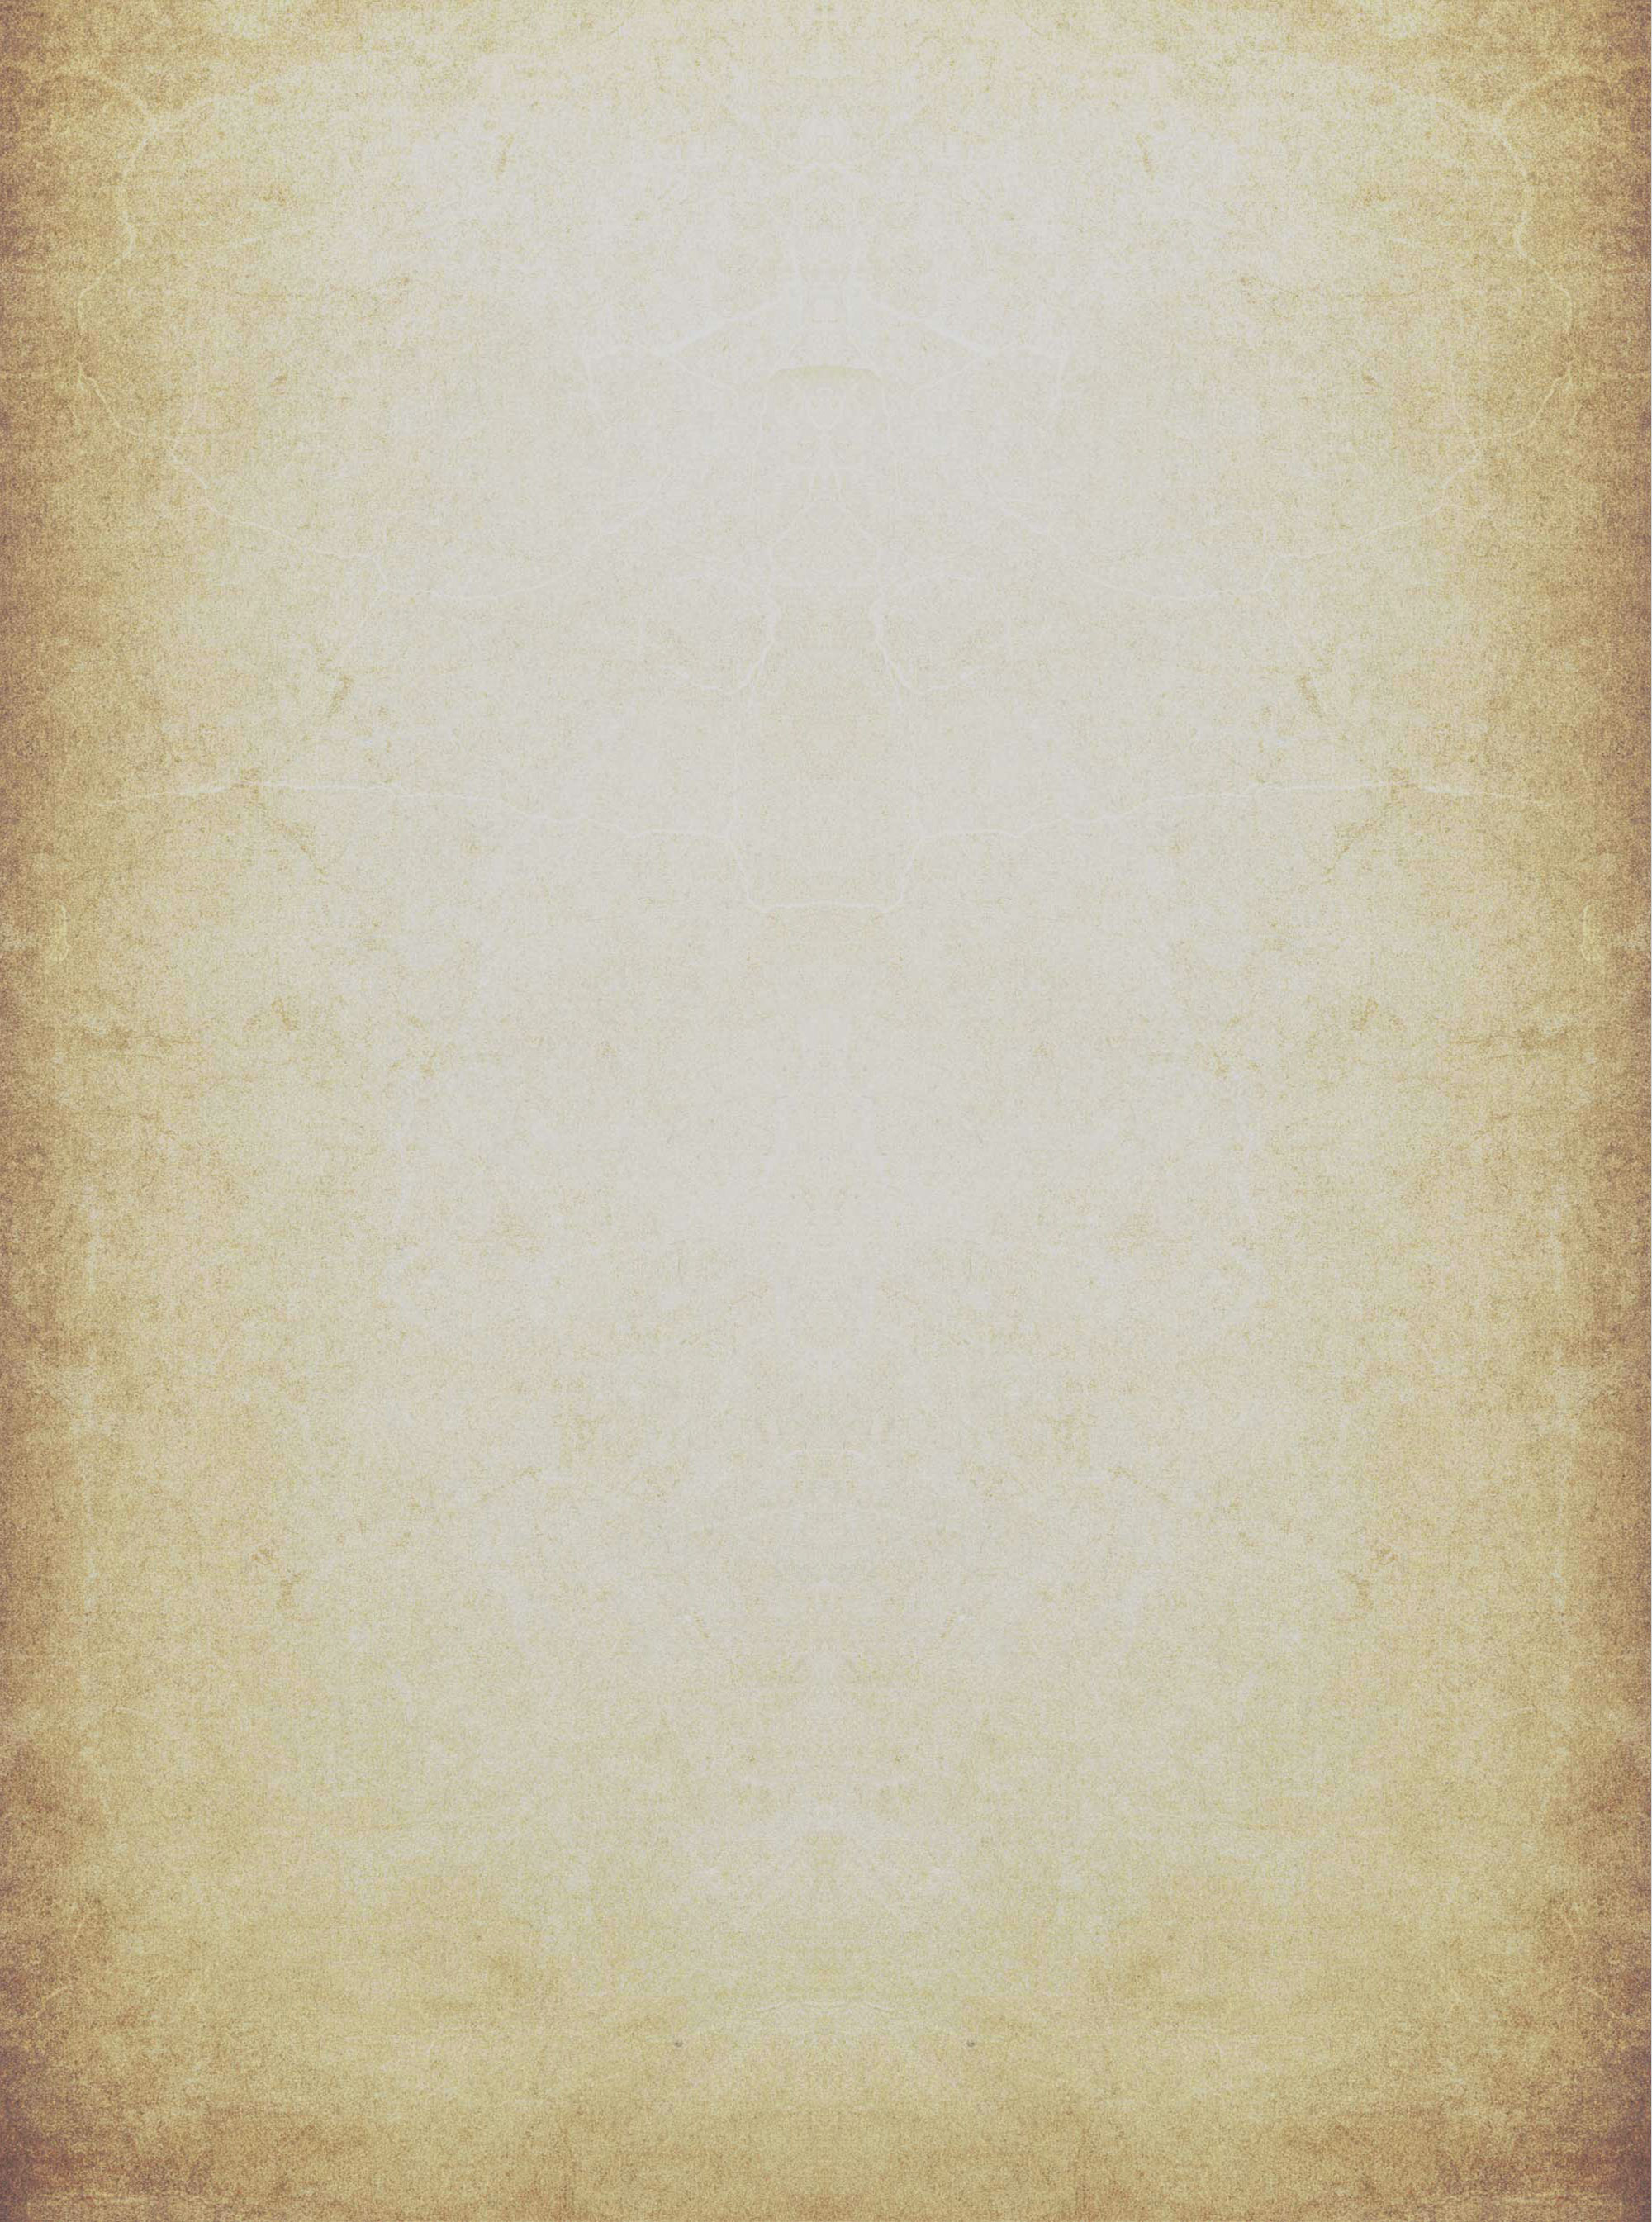 old fashioned paper template physic minimalistics co